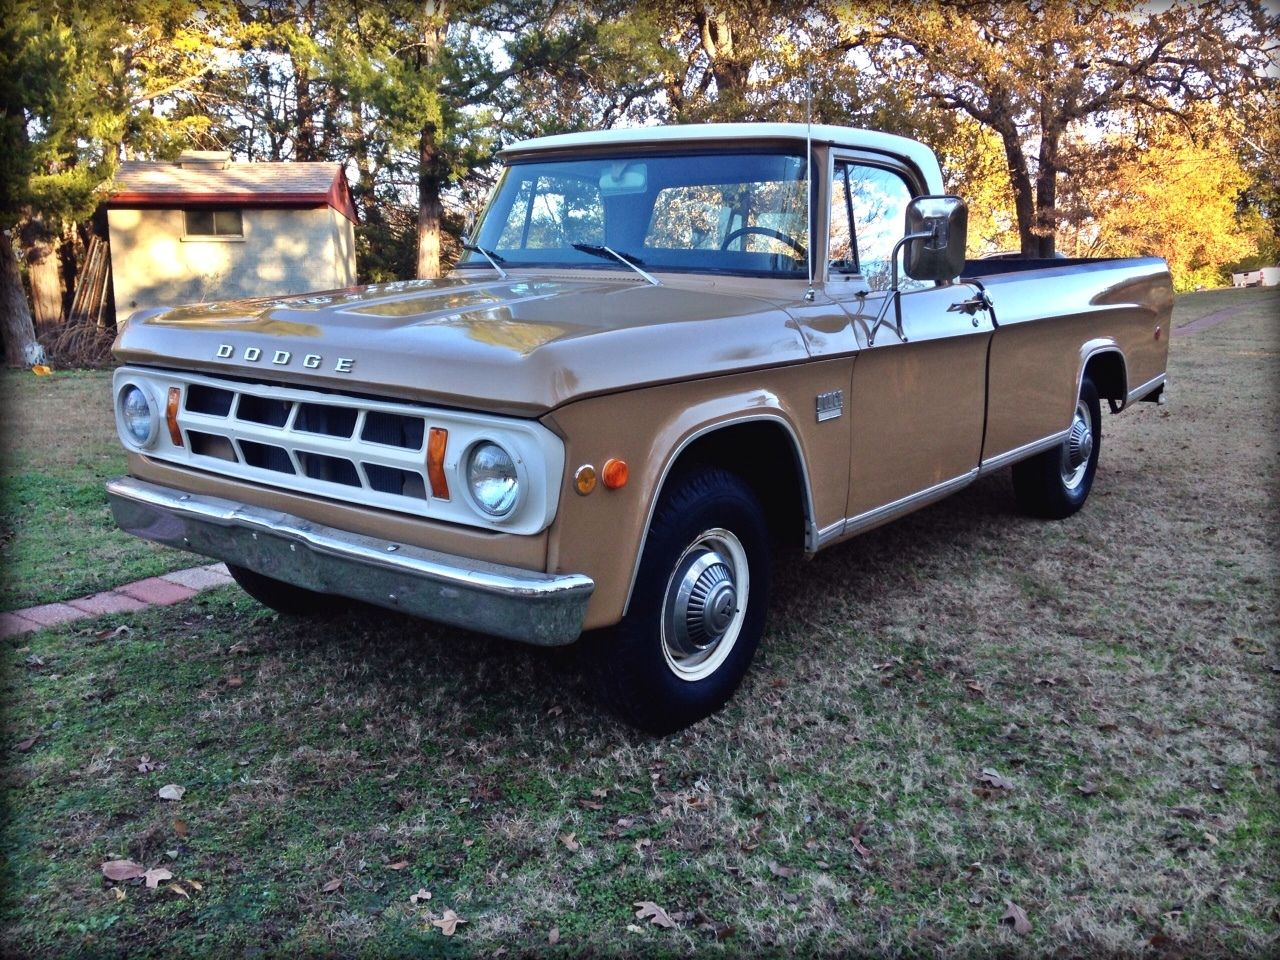 1969 Dodge D100 D200 Pick Up. Classic Mopar Pickup Truck. Low Miles 64,000! - Classic Dodge ...